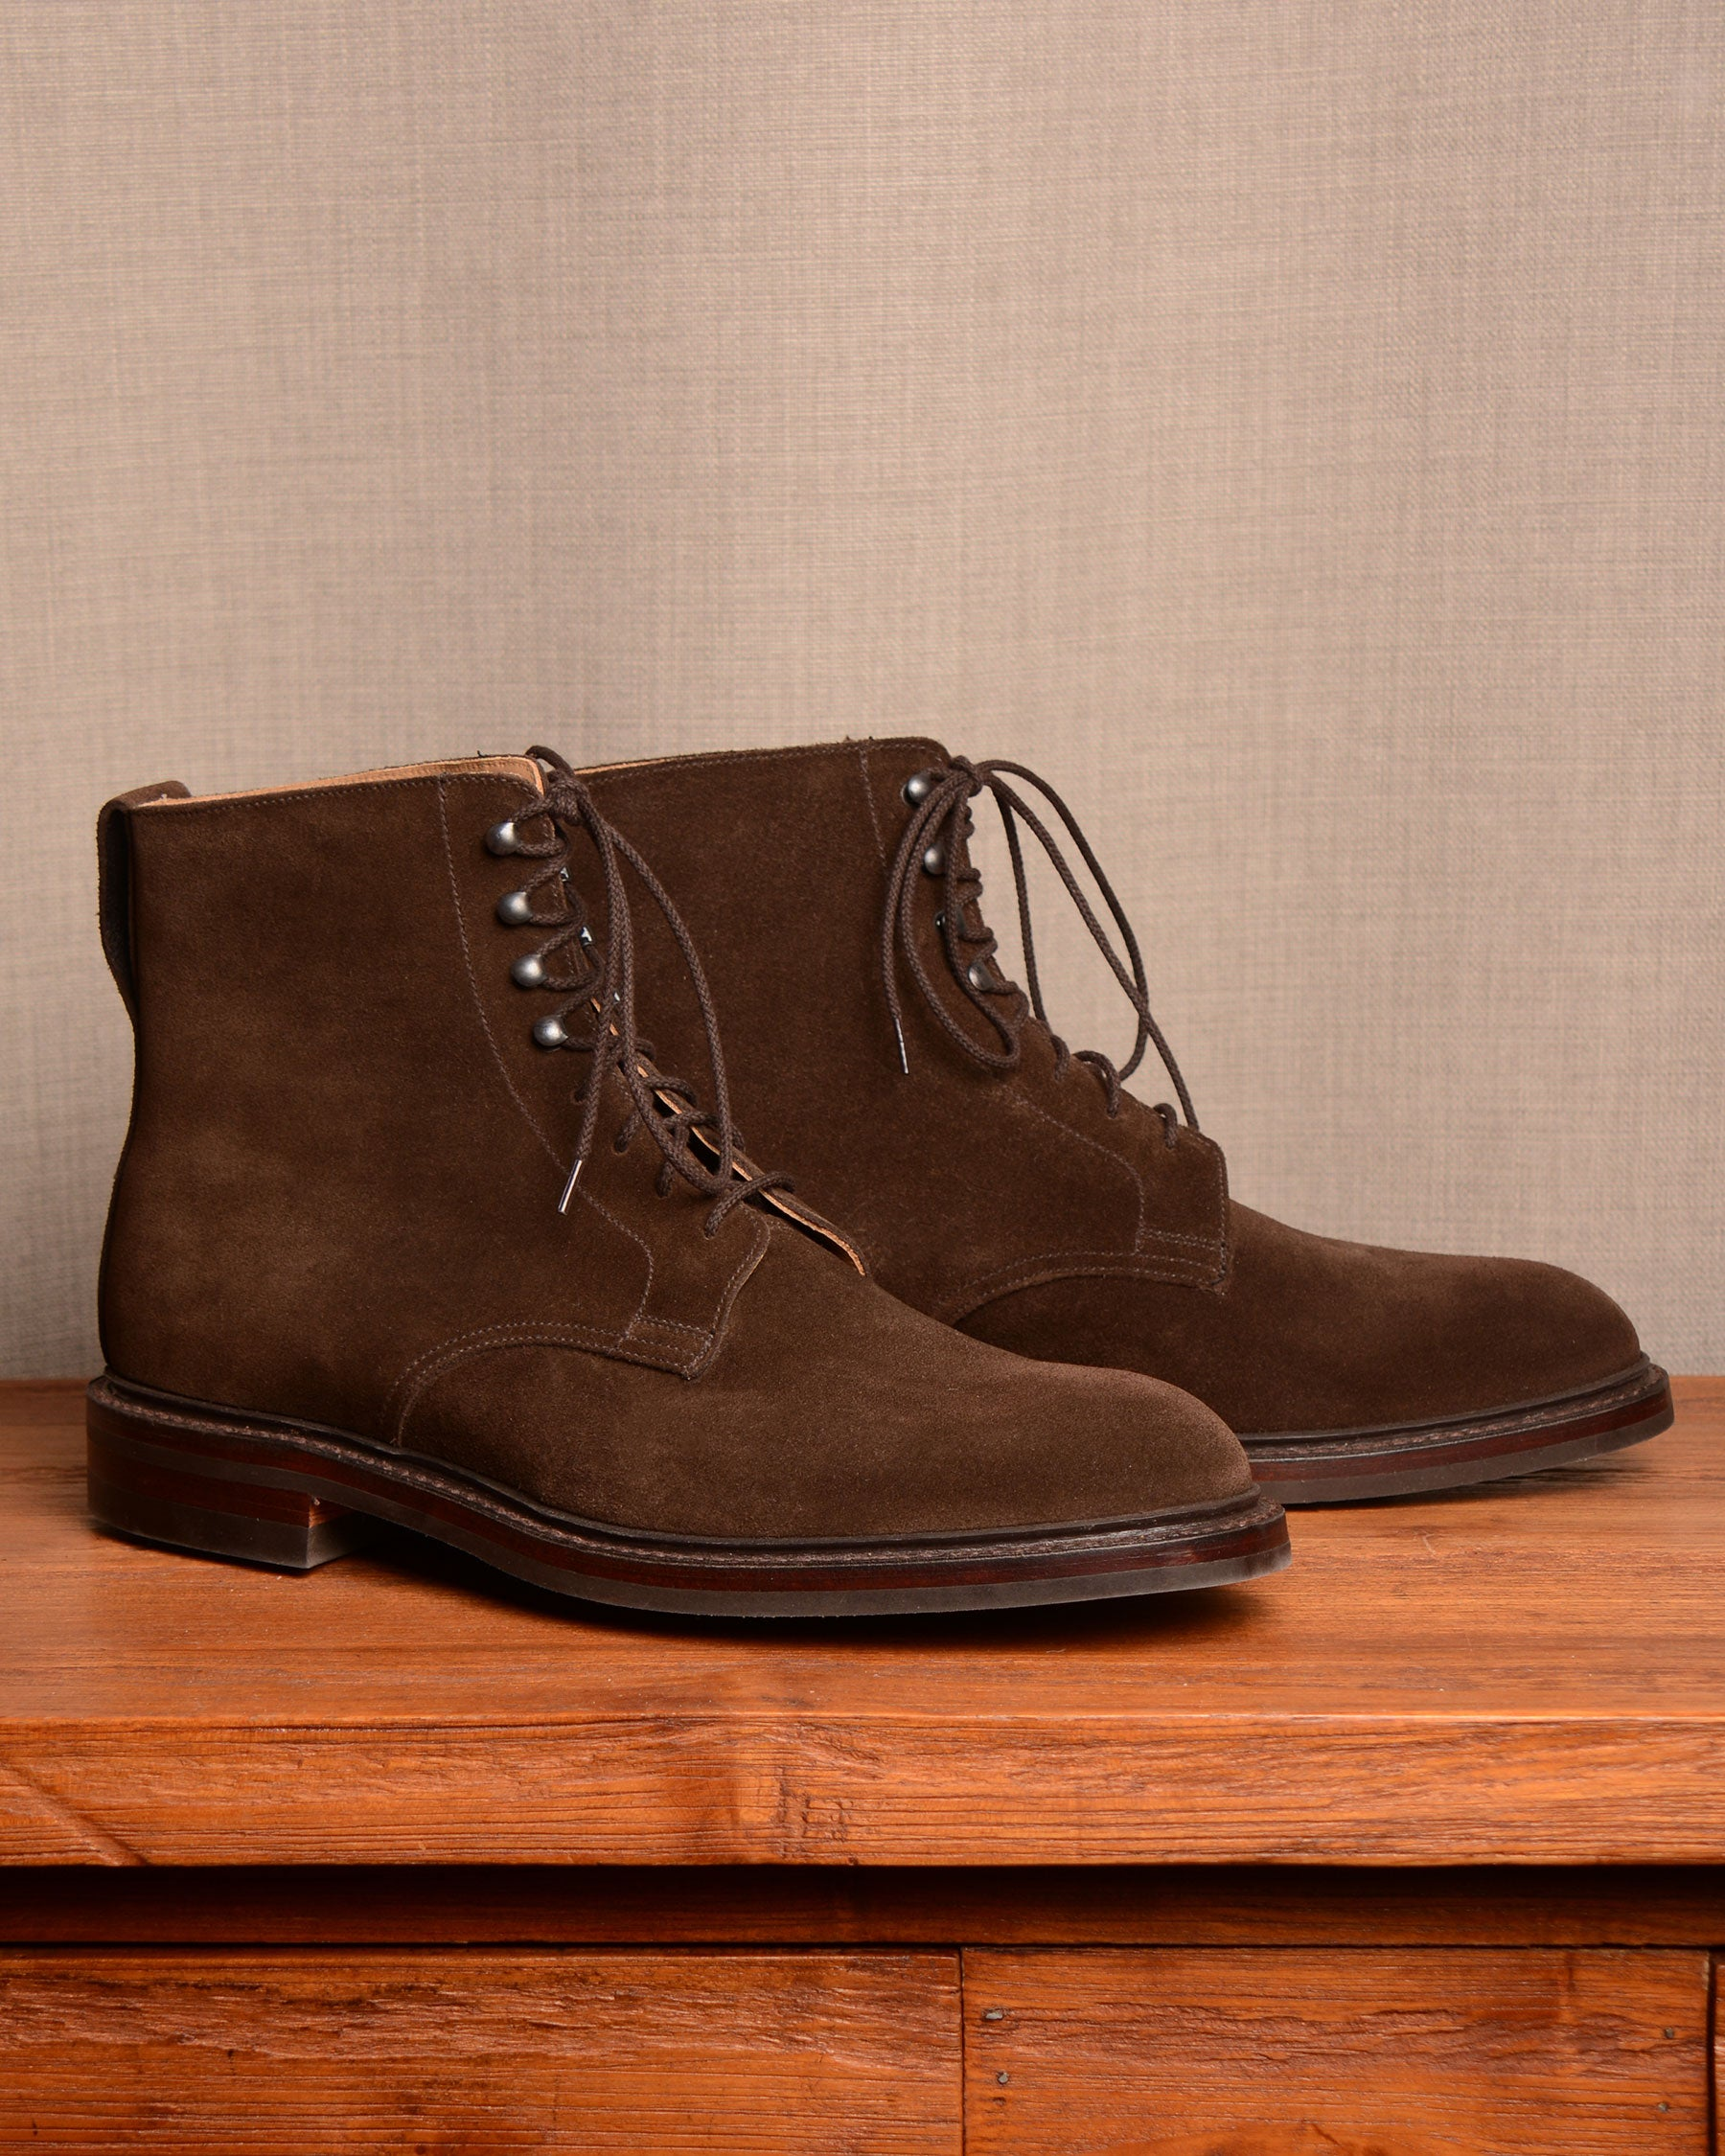 Crockett & Jones Eskdale 2 - Dark Brown Suede